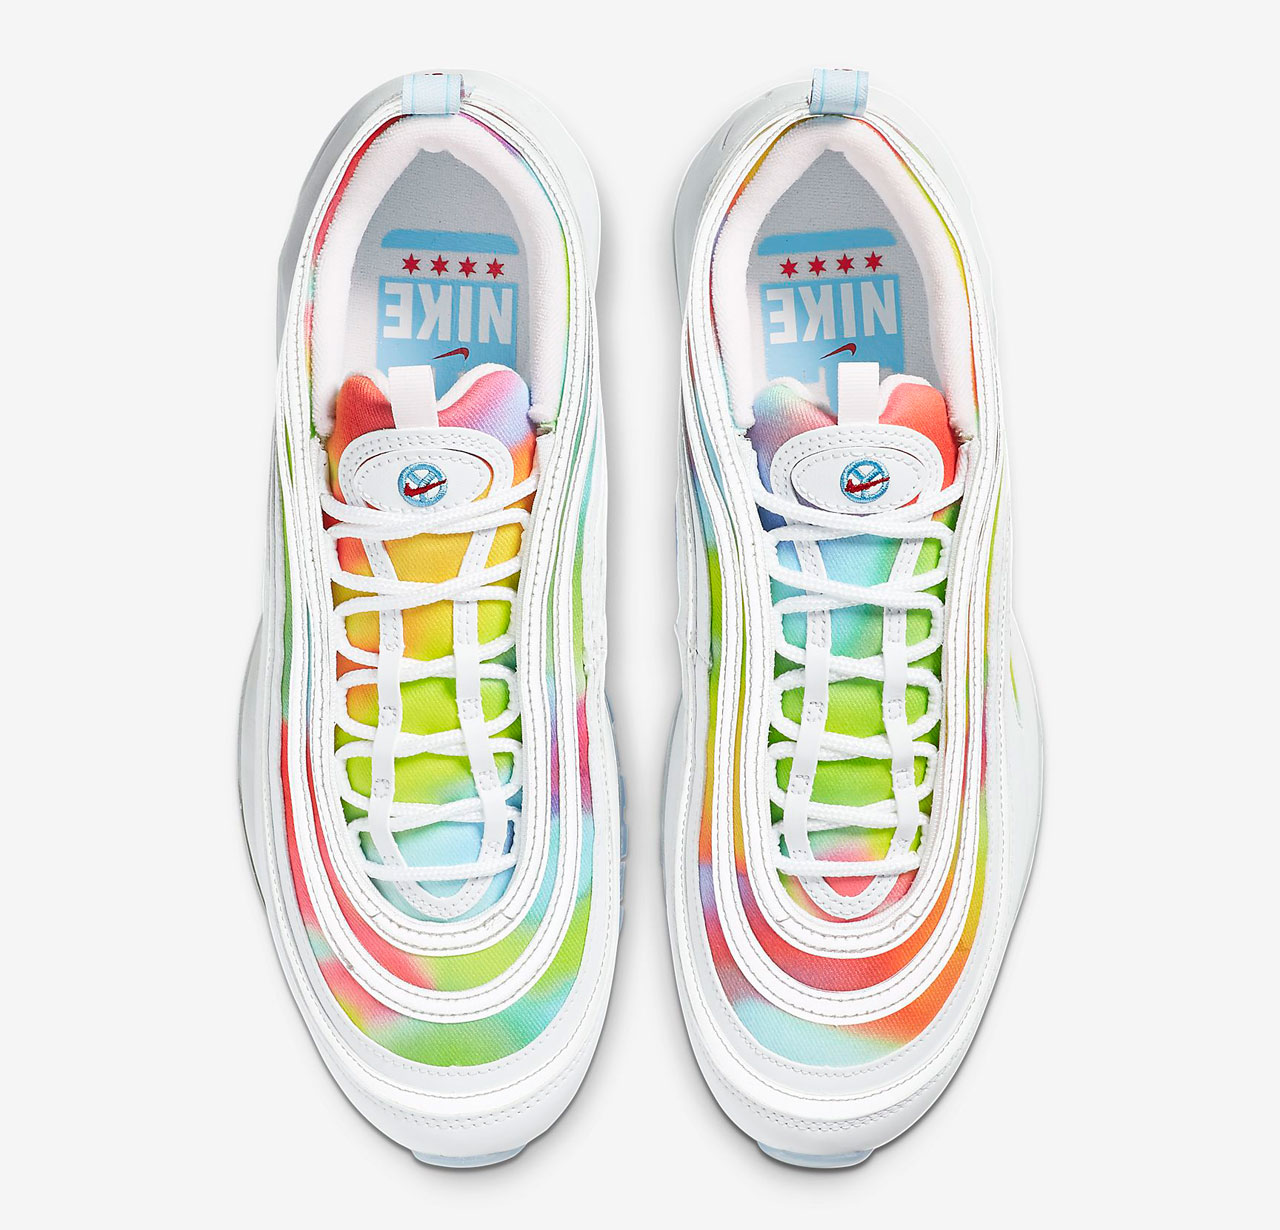 nike-air-max-97-tie-dye-chicago-where-to-buy-2